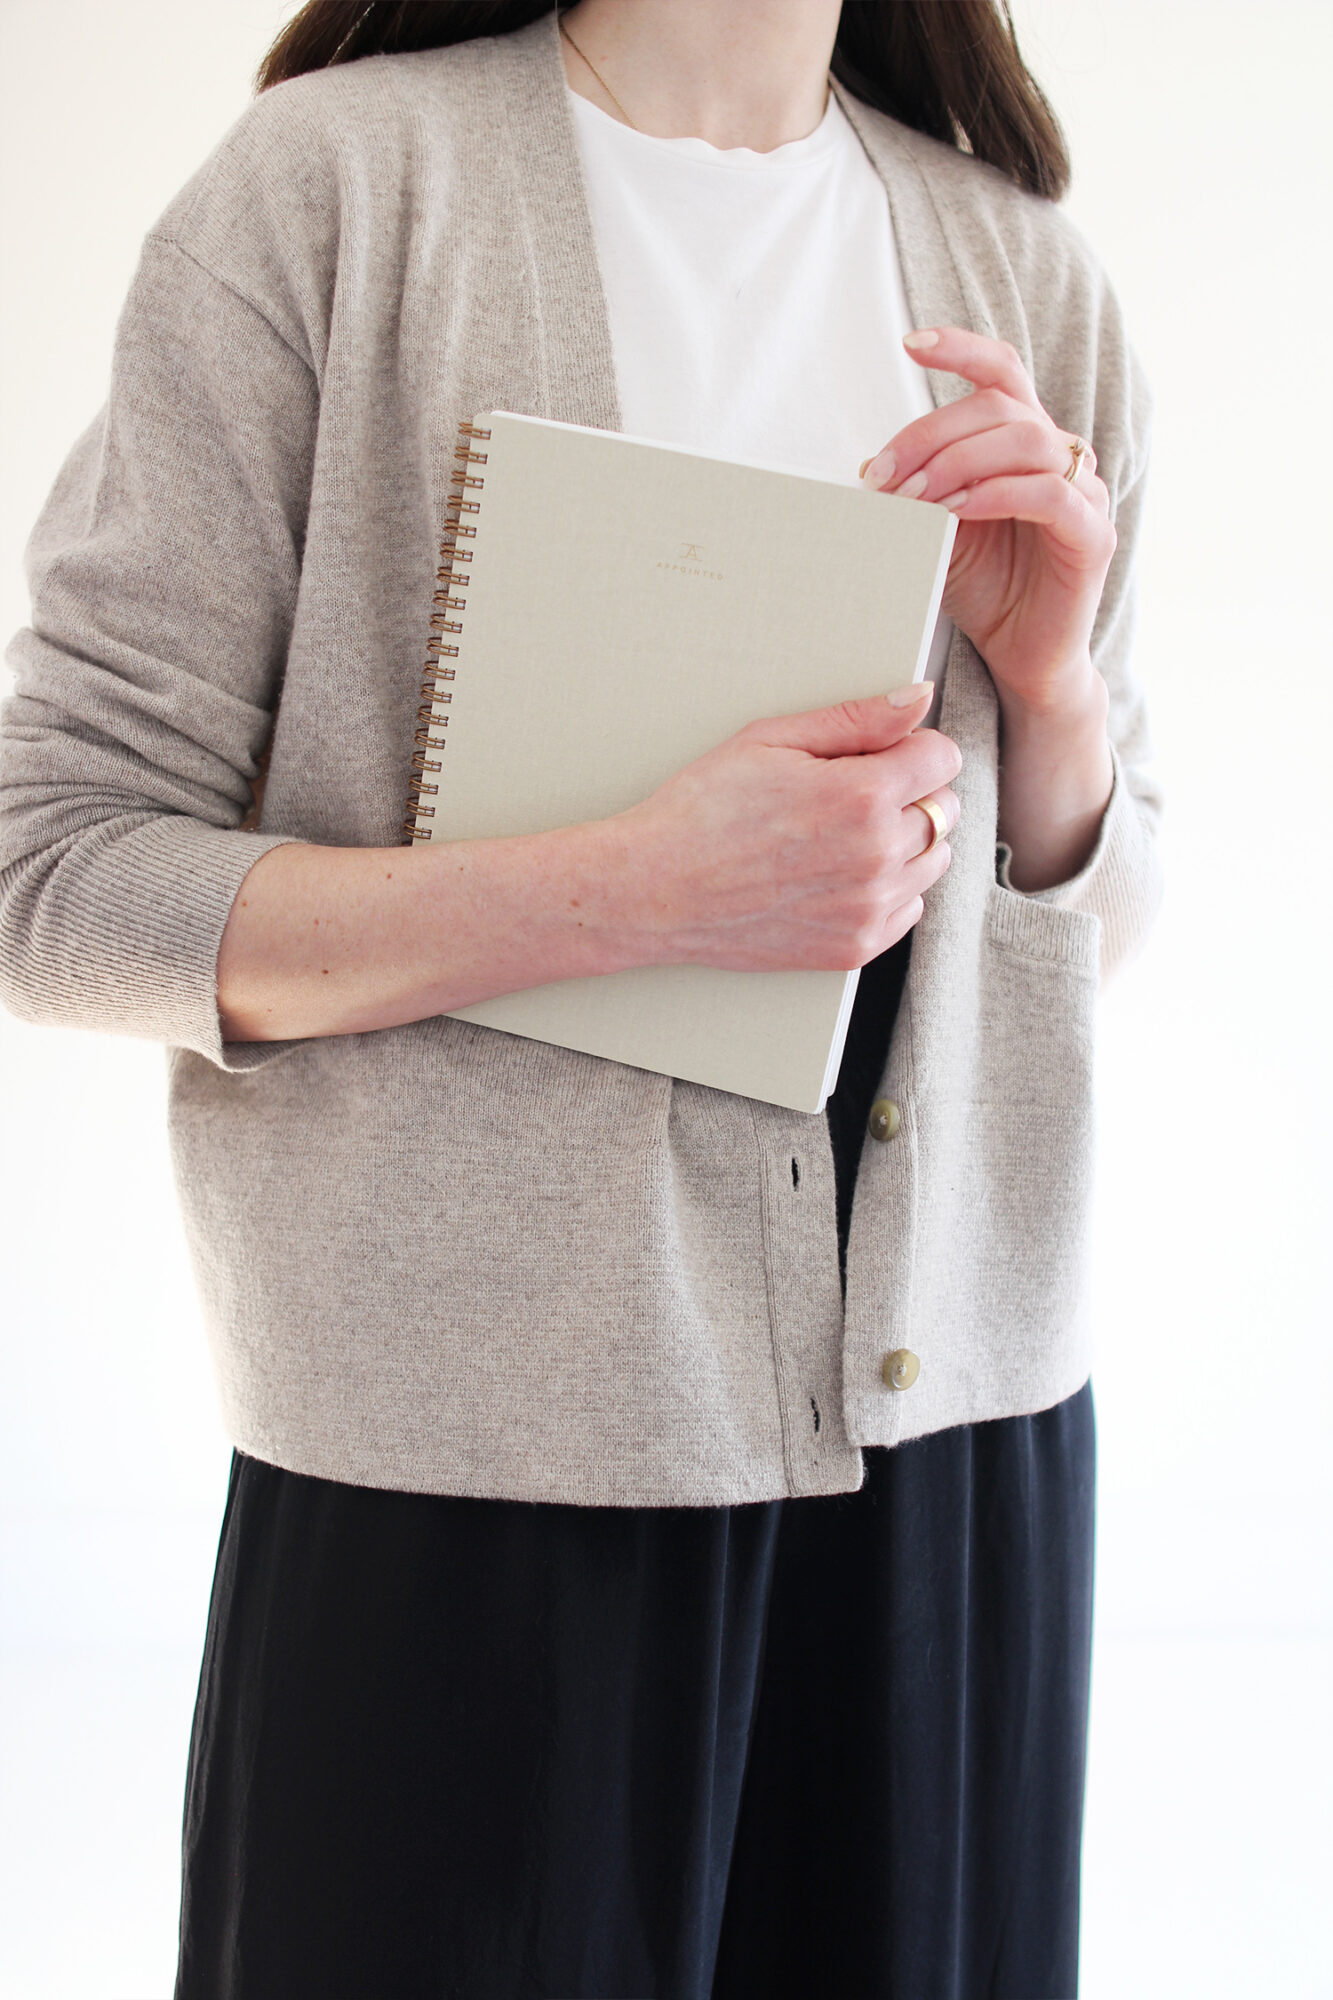 Style Bee wearing a white t-shirt, oatmeal cardigan, silk black pant, wheat knit flat, holding a lightweight notebook.